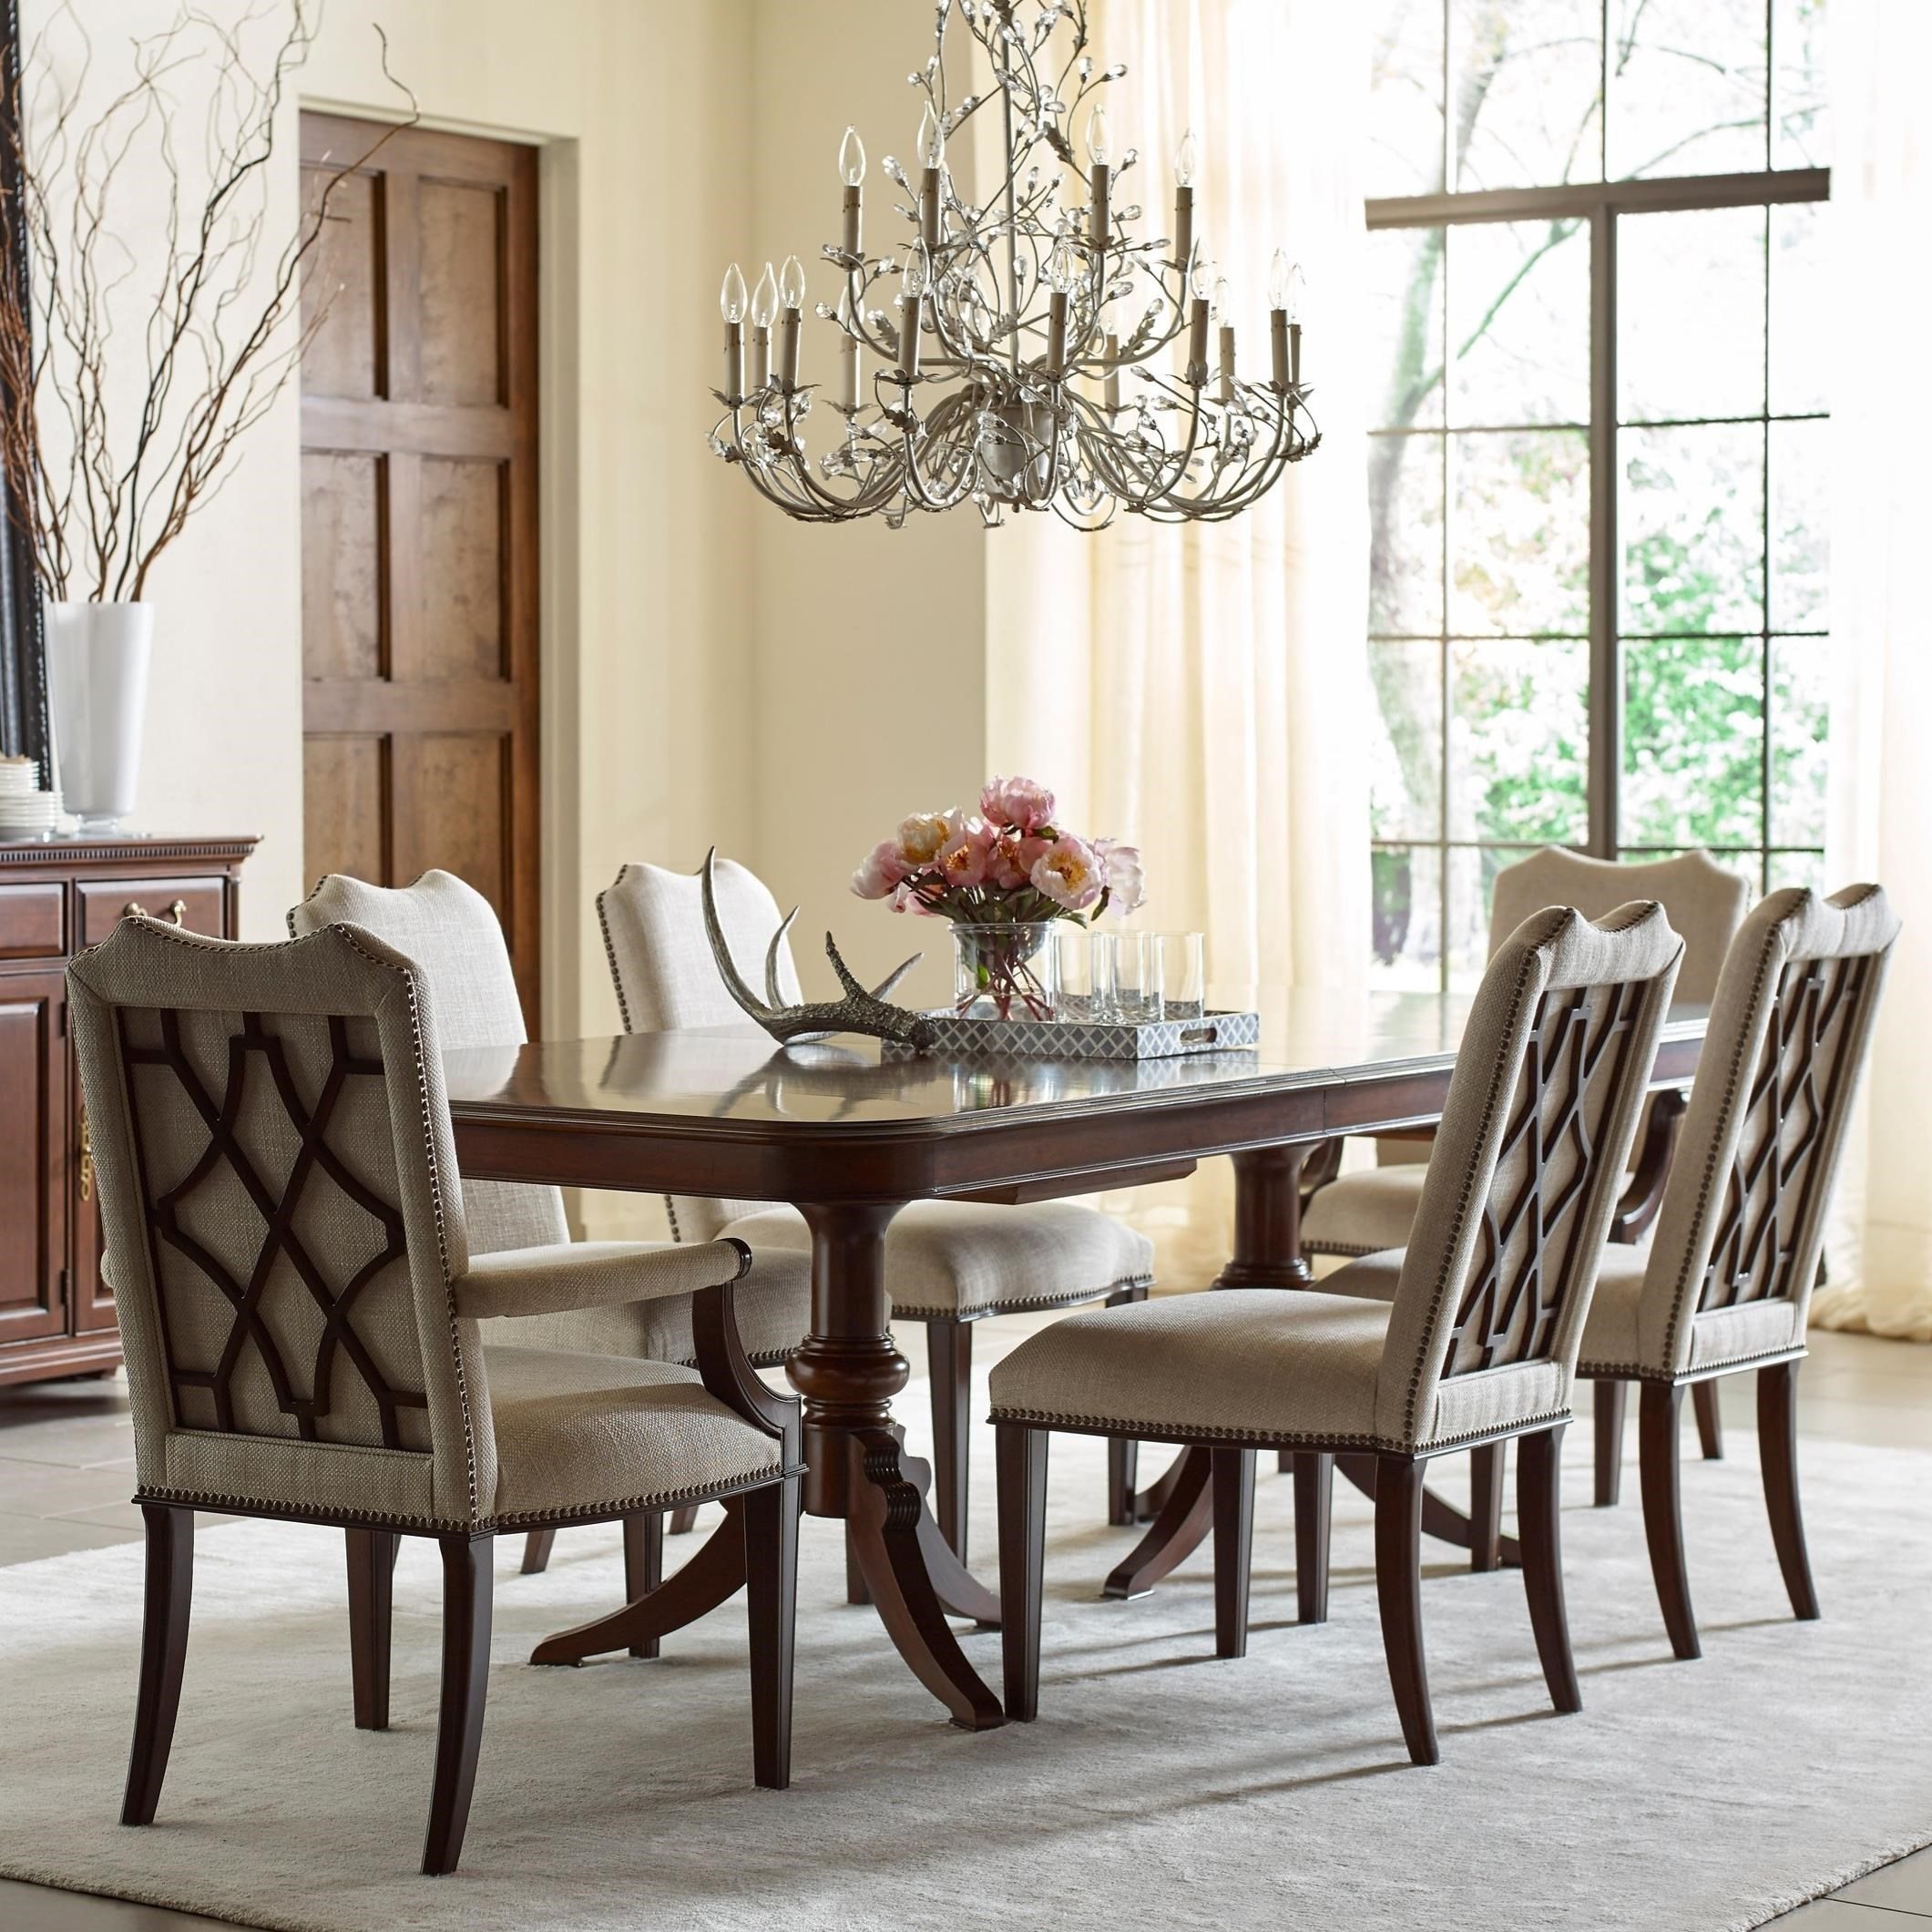 Kincaid Dining Room Set: Kincaid Furniture Hadleigh Seven Piece Formal Dining Set With Upholstered Chairs